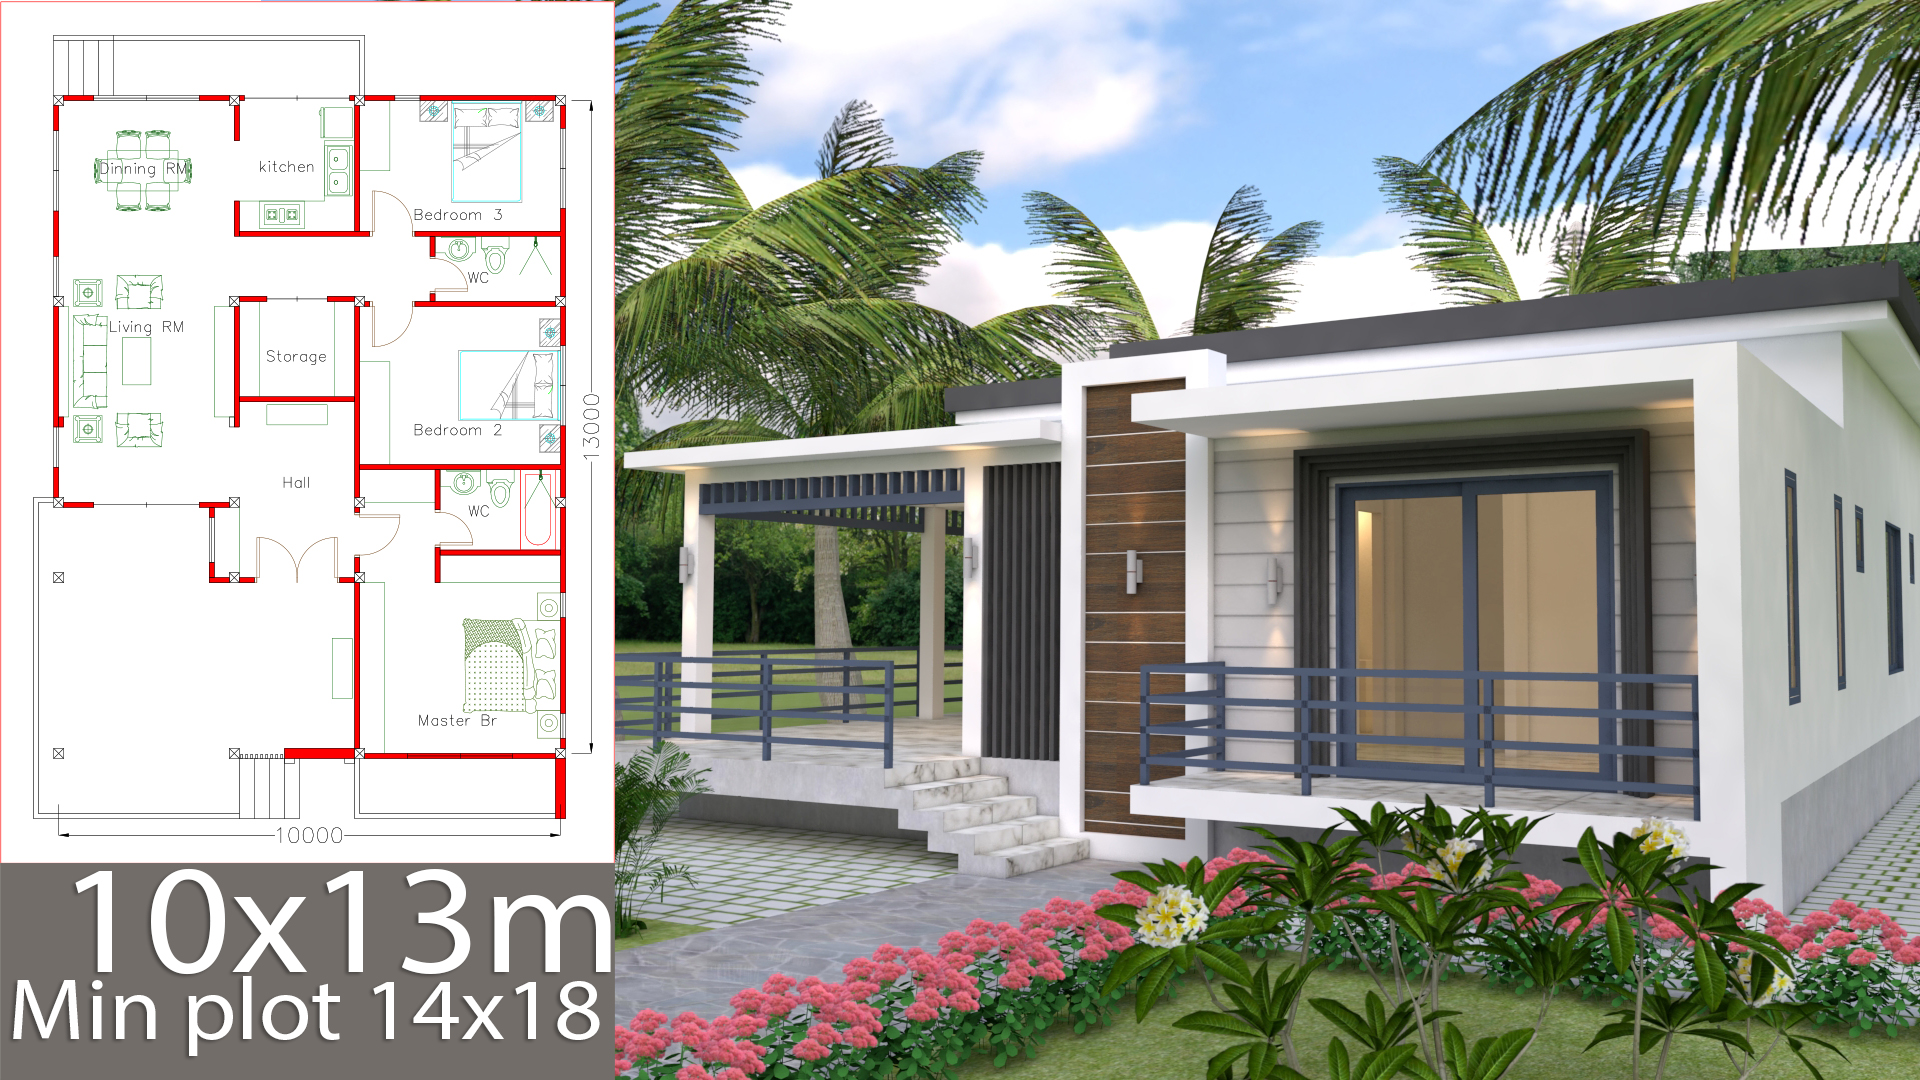 Sketchup Home Design Plan 10x13m with 3 Bedrooms ...